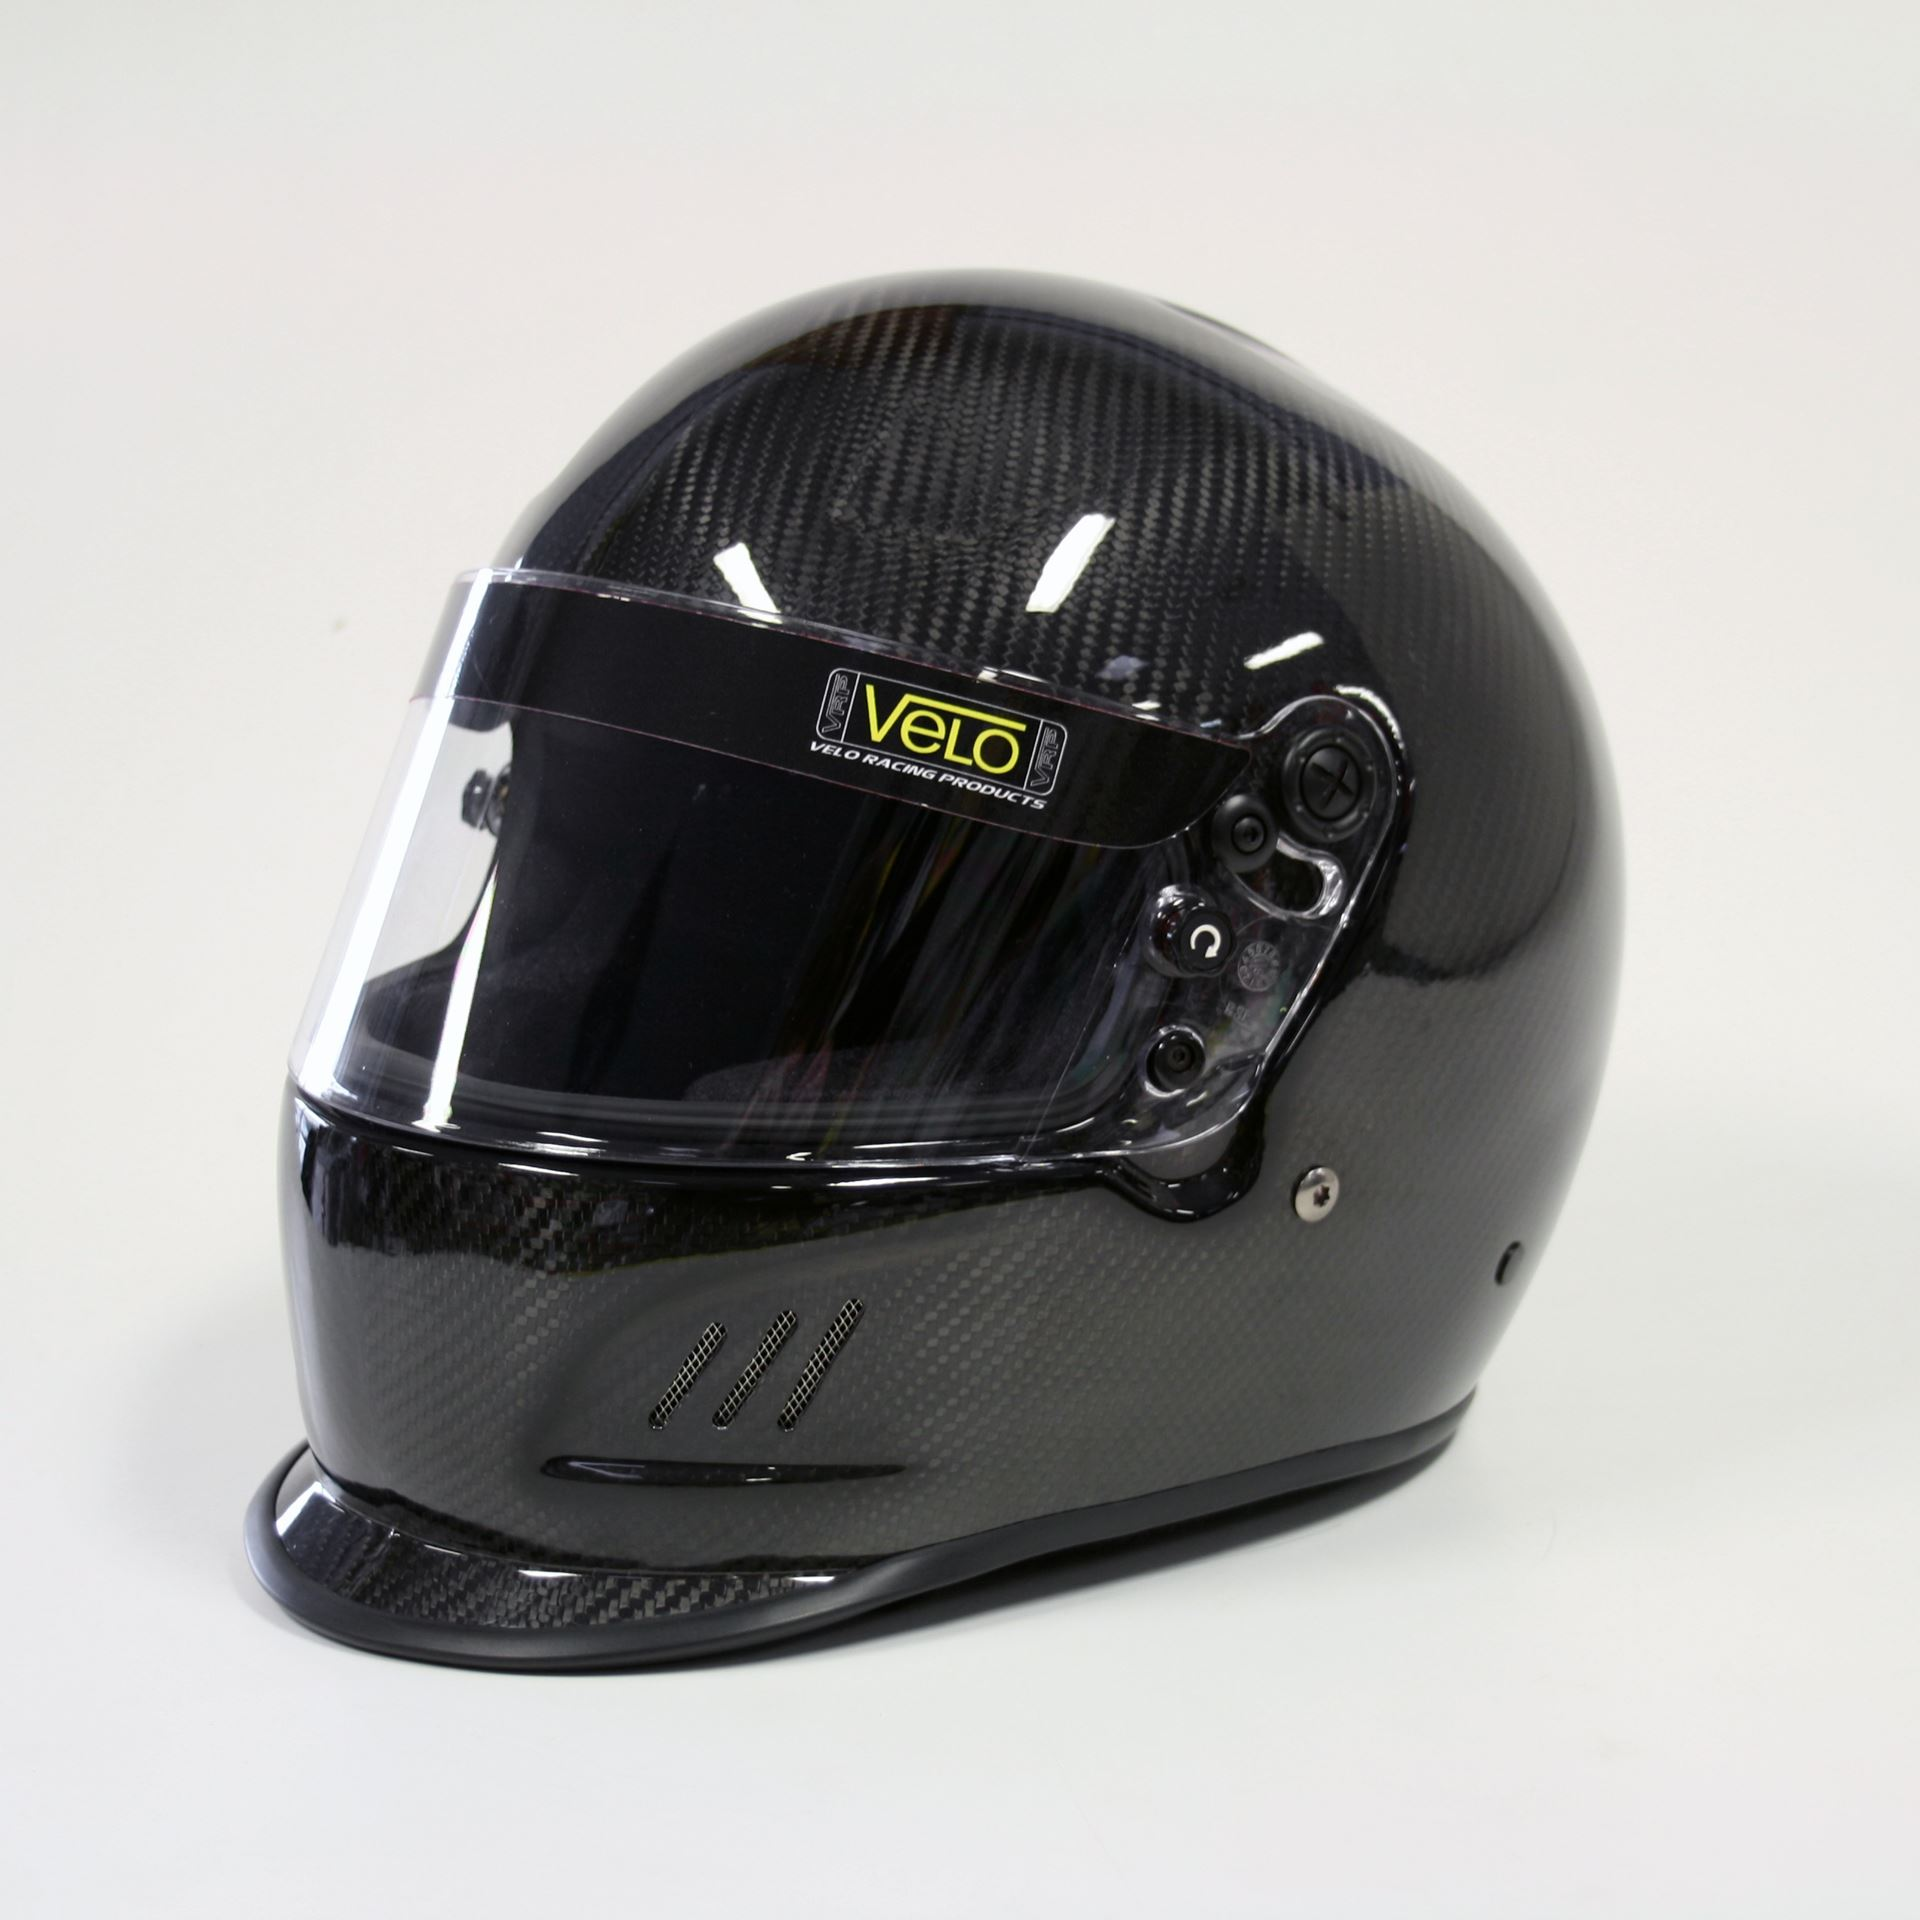 ce604fef Helmets | Autosport - Specialists in all things motorsport